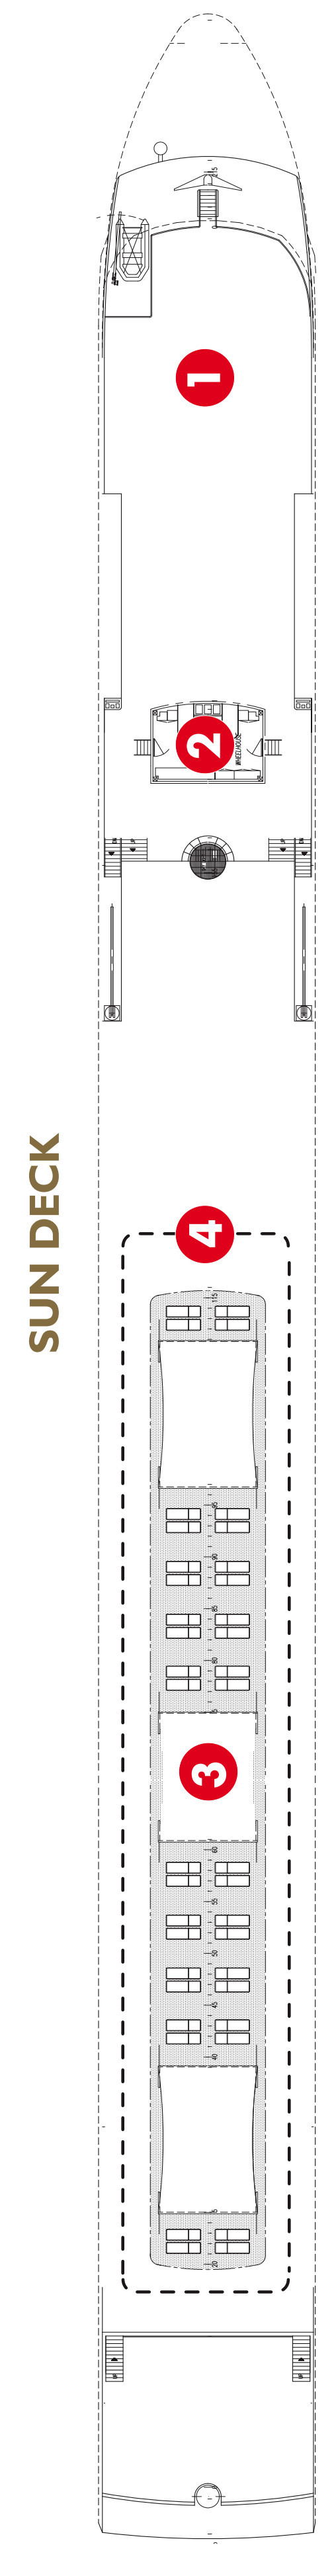 Scenic Jewel Sun Deck layout